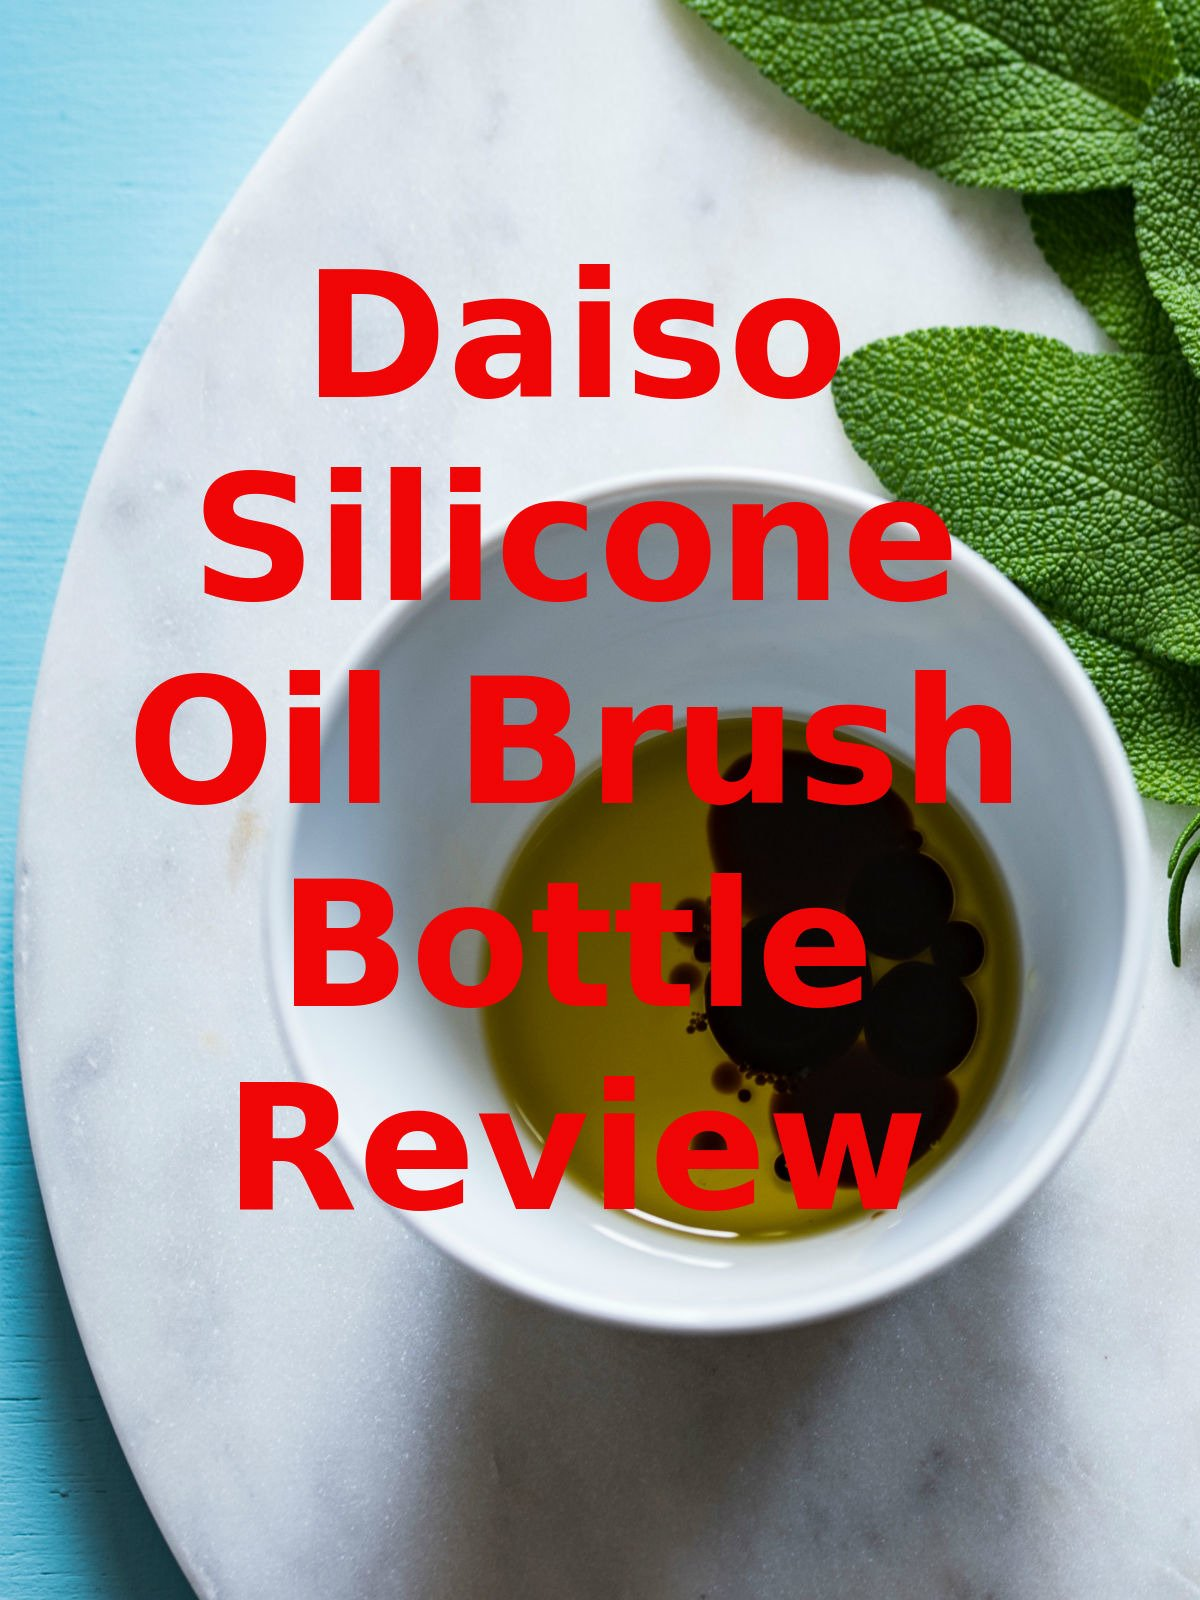 Review: Daiso Silicone Oil Brush Bottle Review